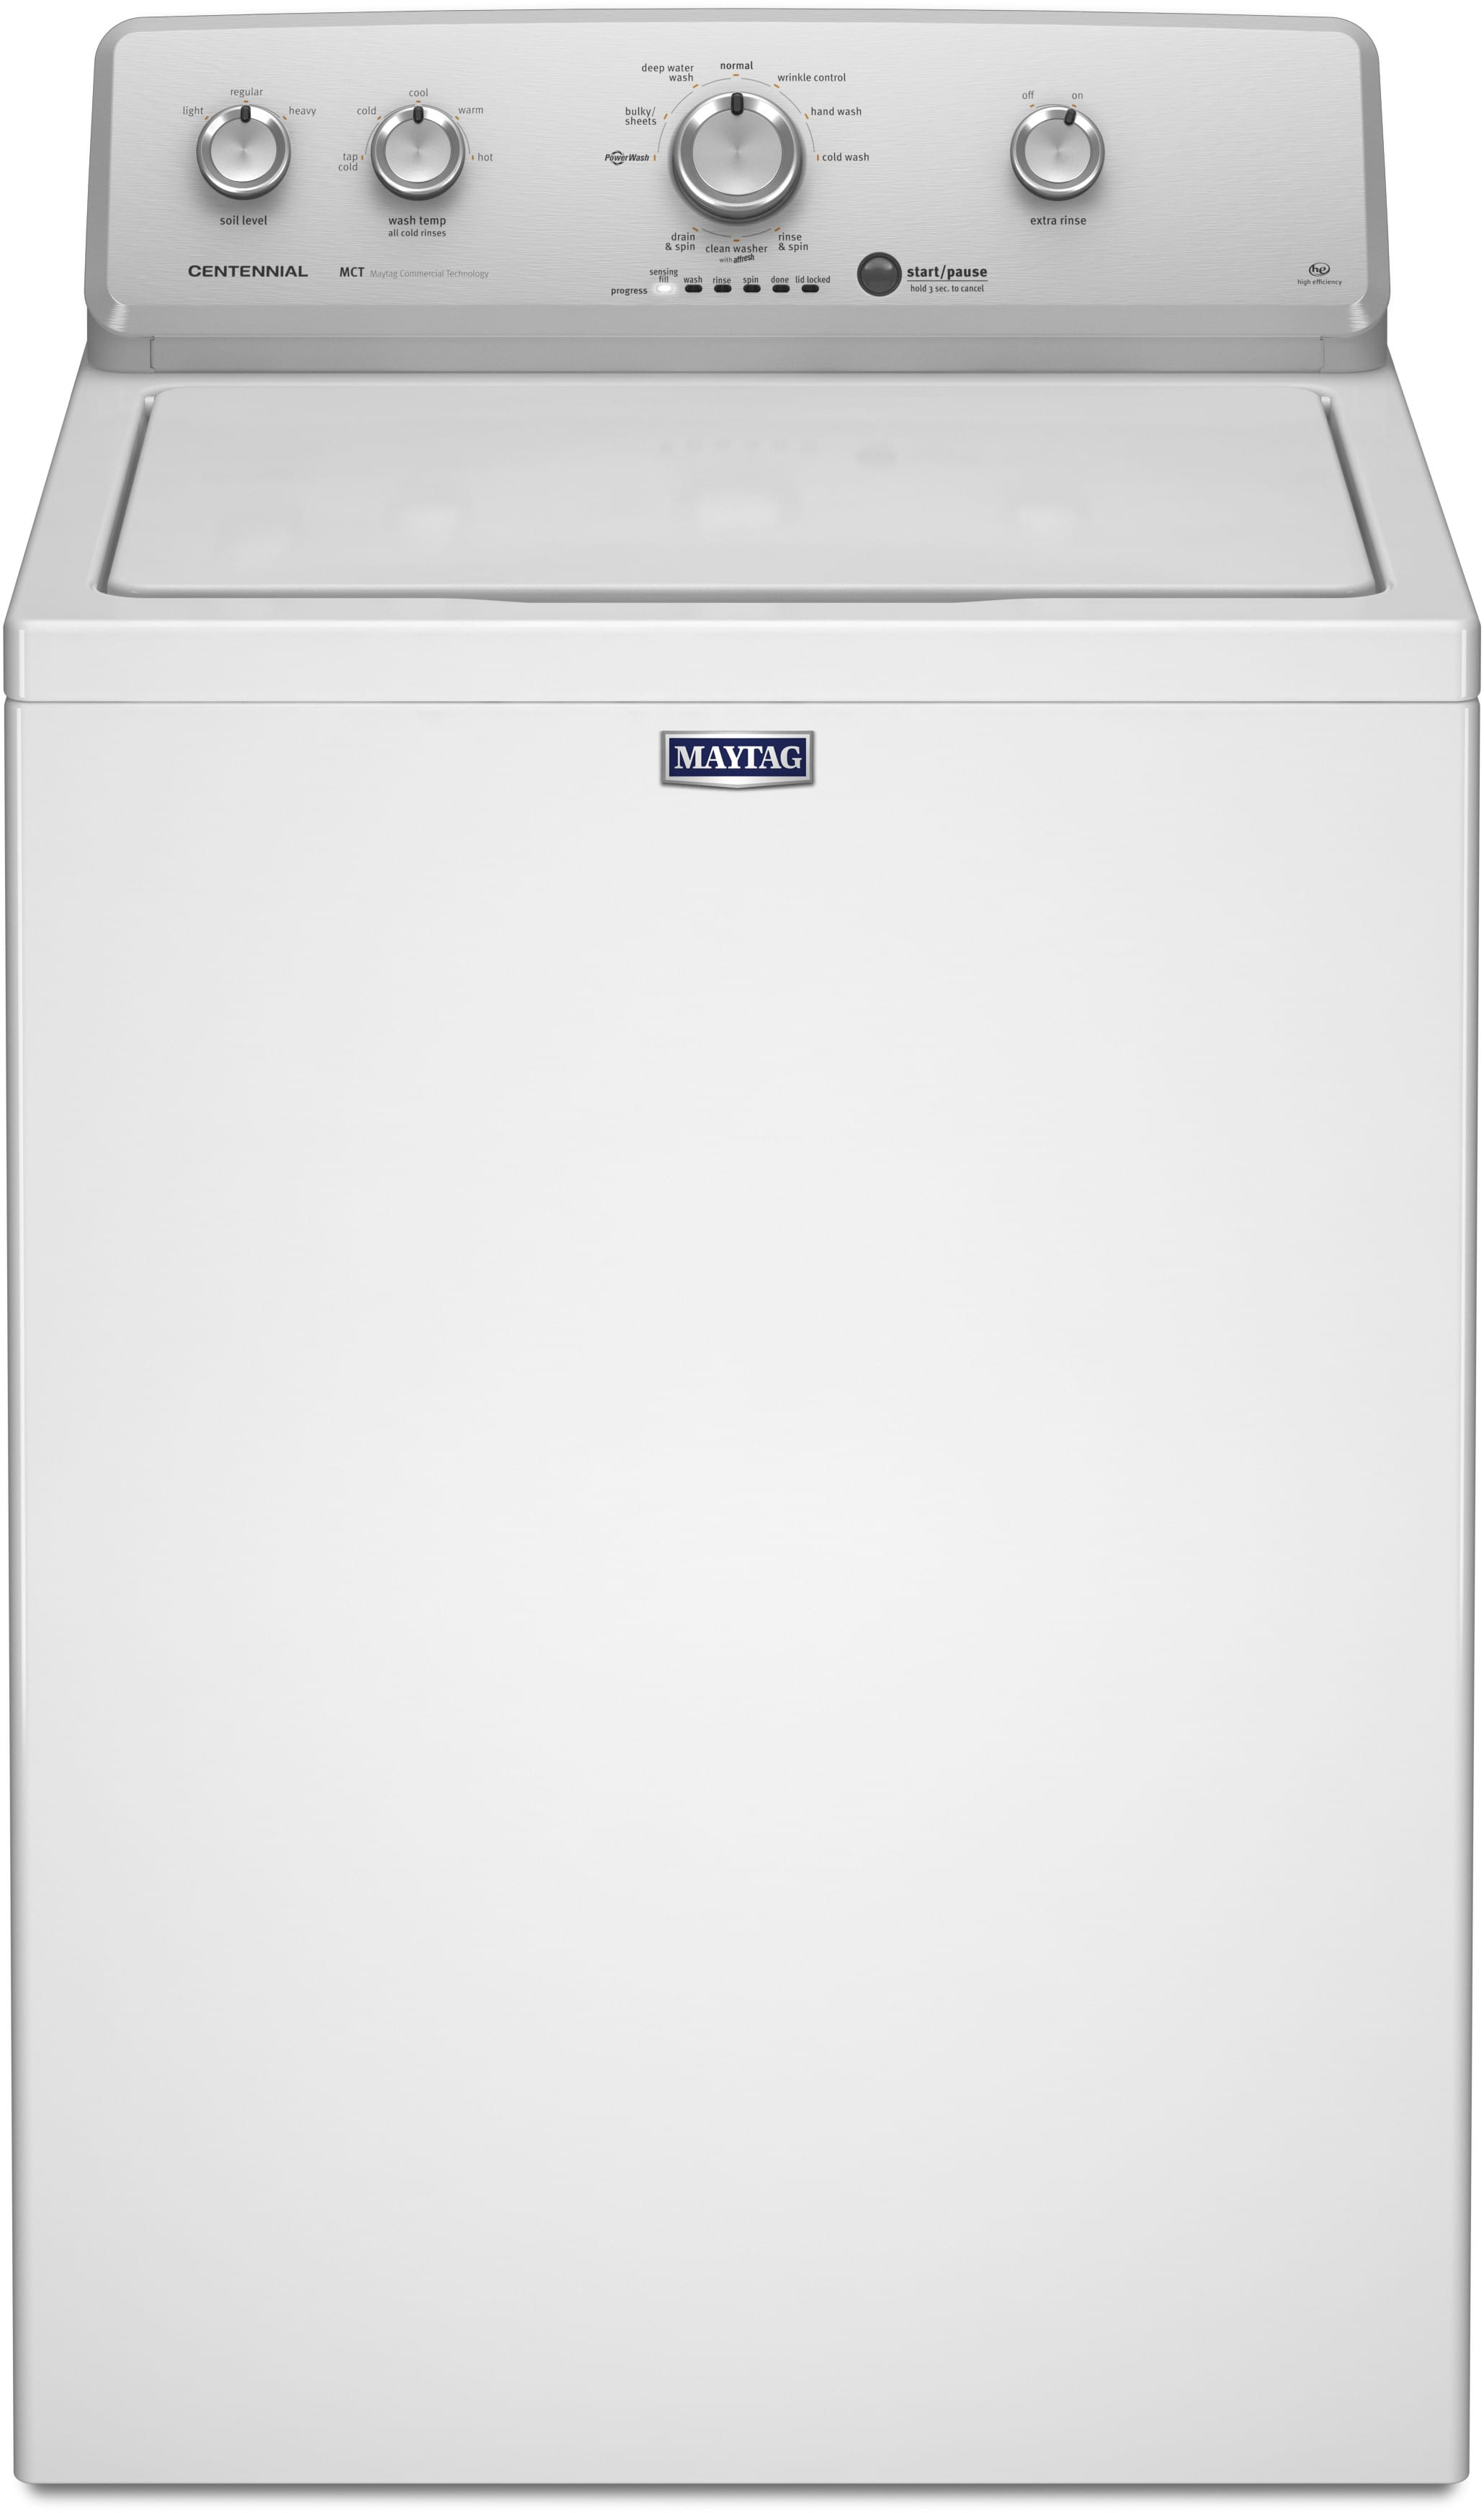 kenmore 400 washer. top load washer with 11 wash cycles, 700 rpm, powerwash cycle, wrinkle control, automatic size sensing technology, agitator and clean cycle kenmore 400